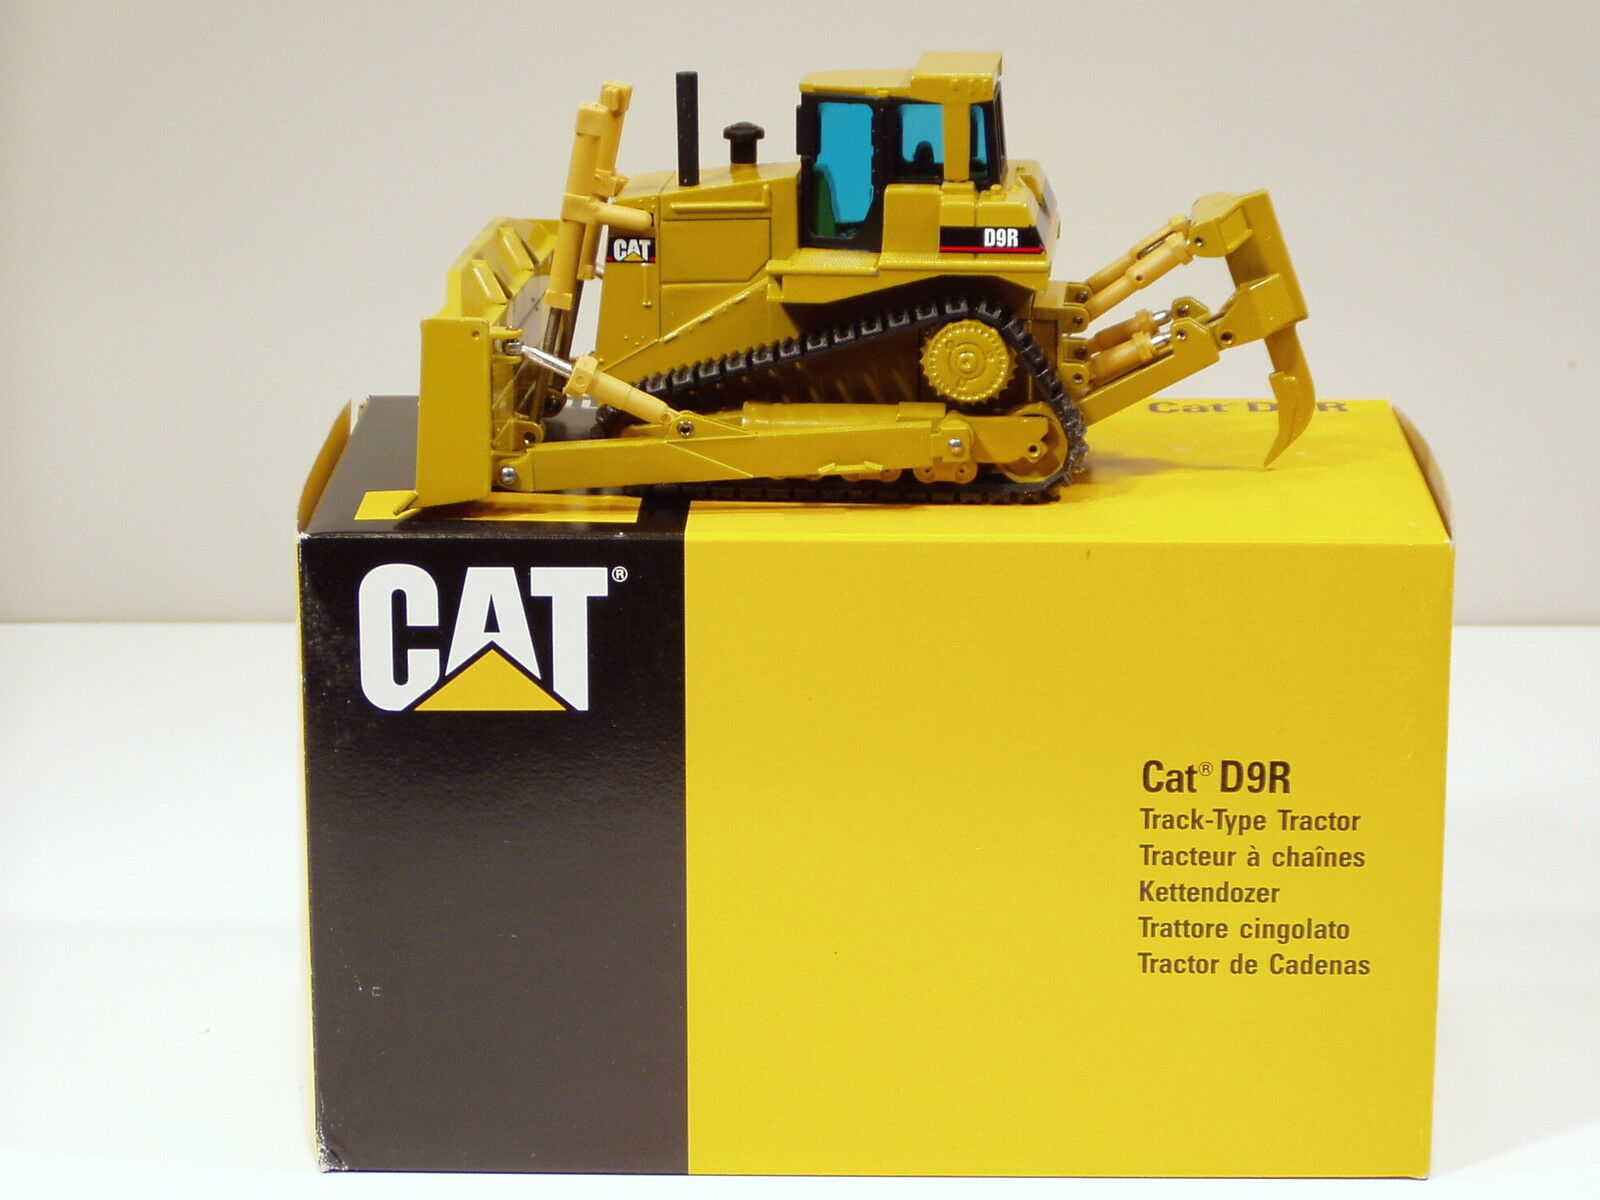 CATERPILLAR D9R Bulldozer -  Lancement Edition  - NZG  451 - 1 50 - Comme neuf IN BOX